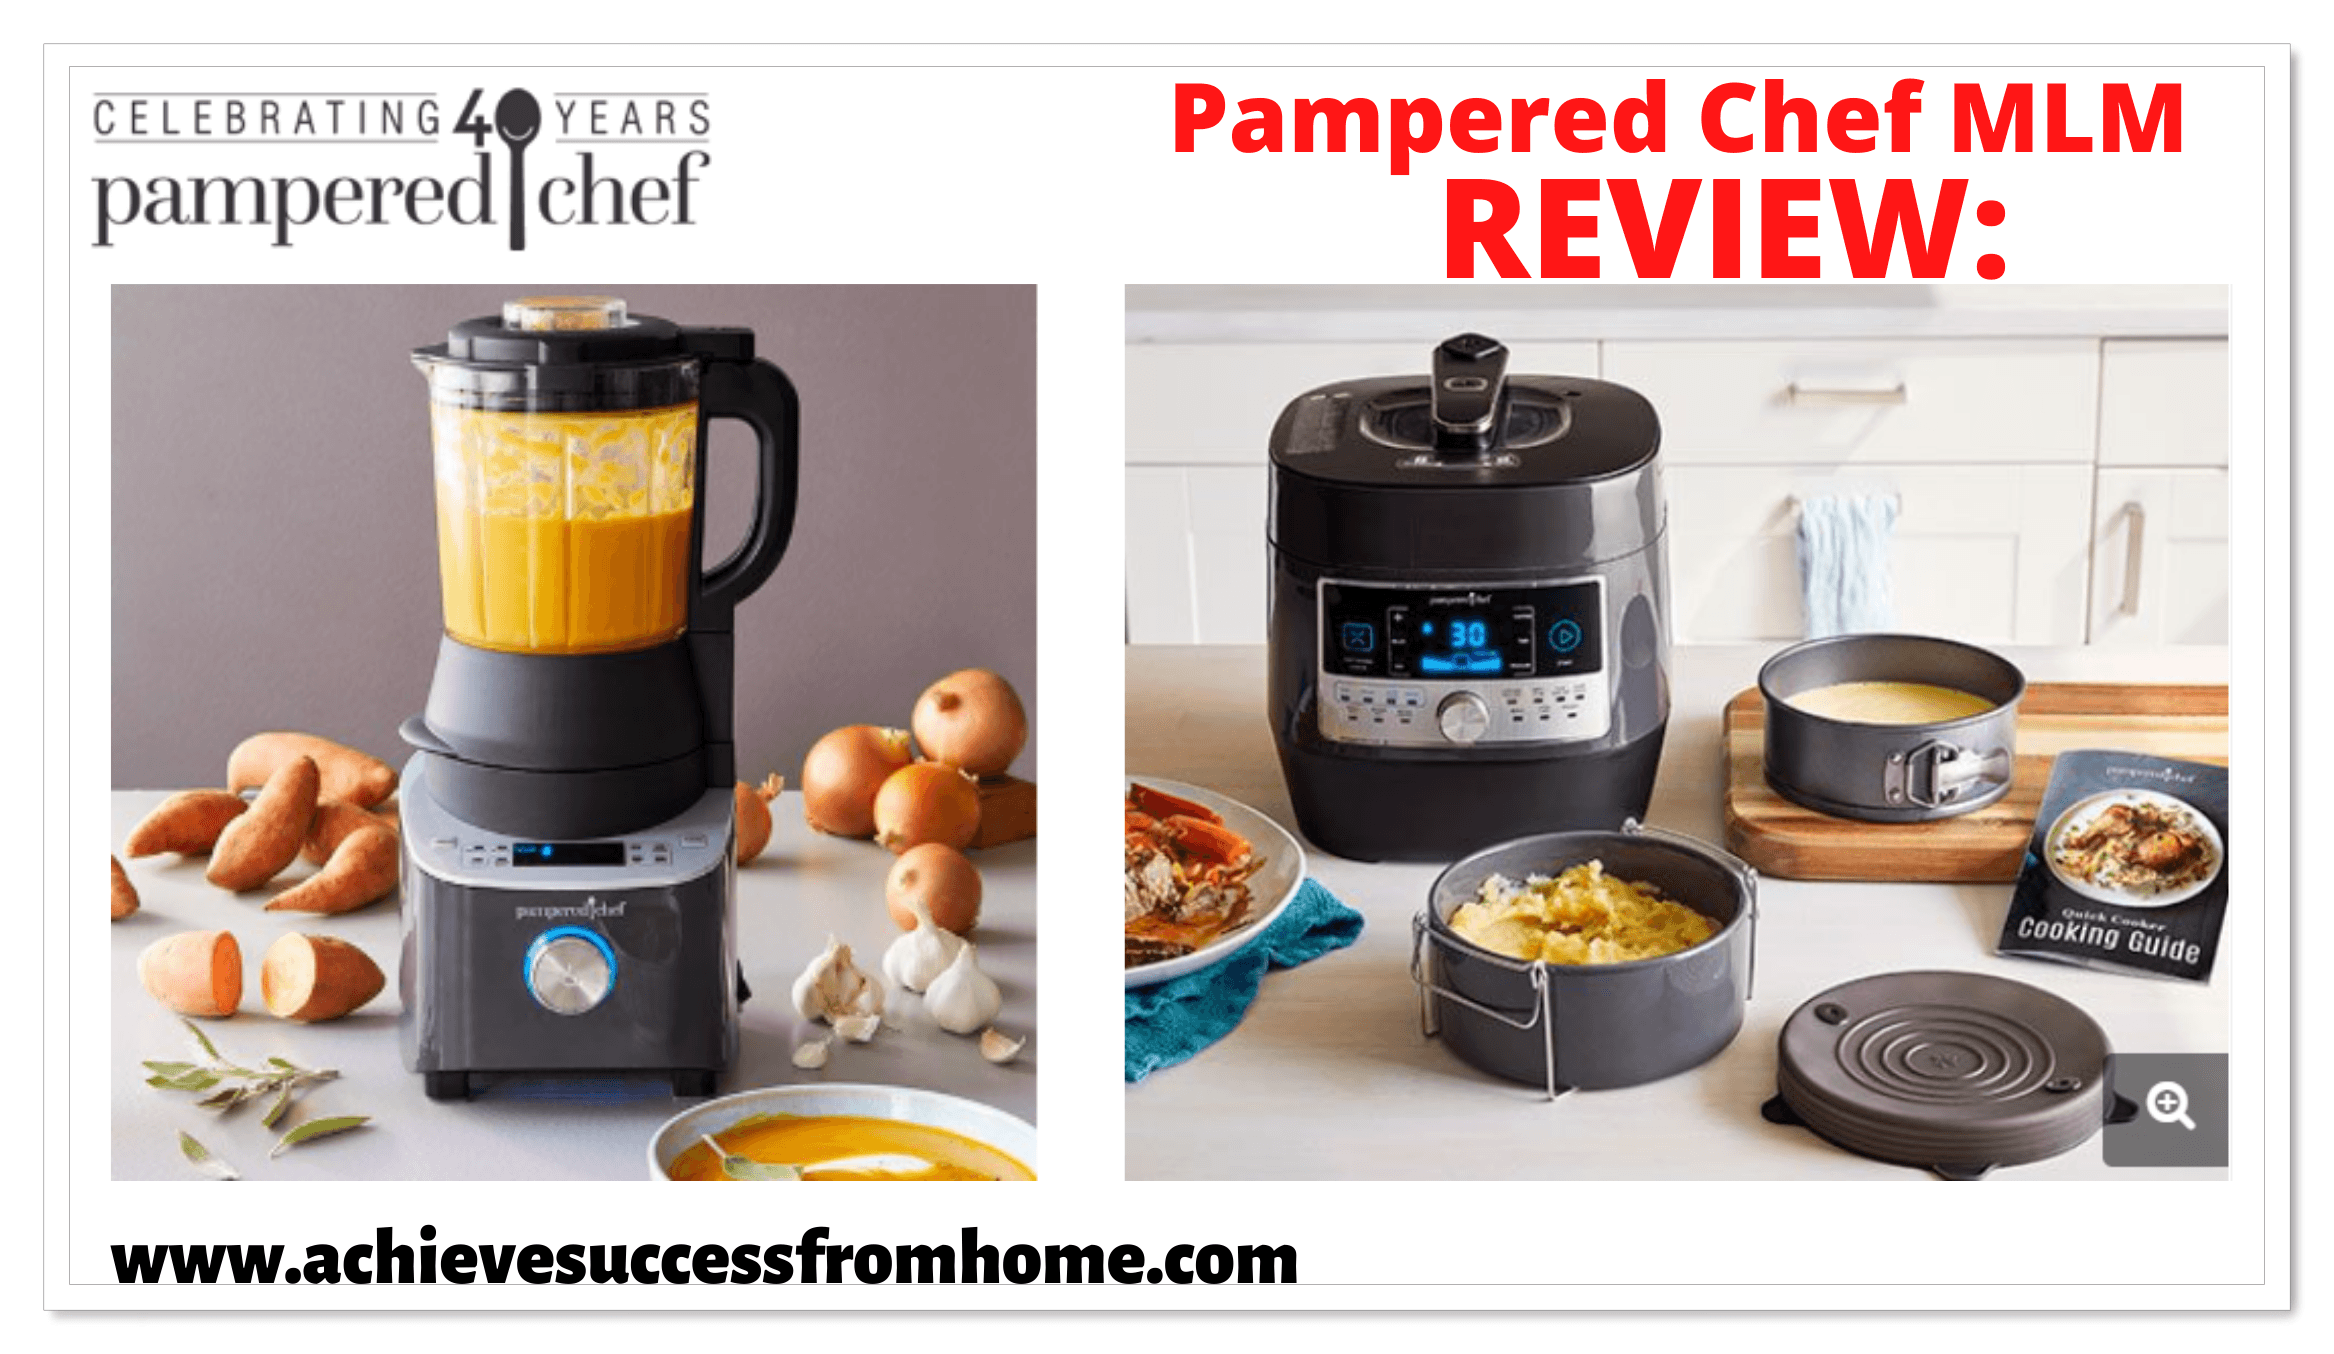 The Pampered Chef MLM Review